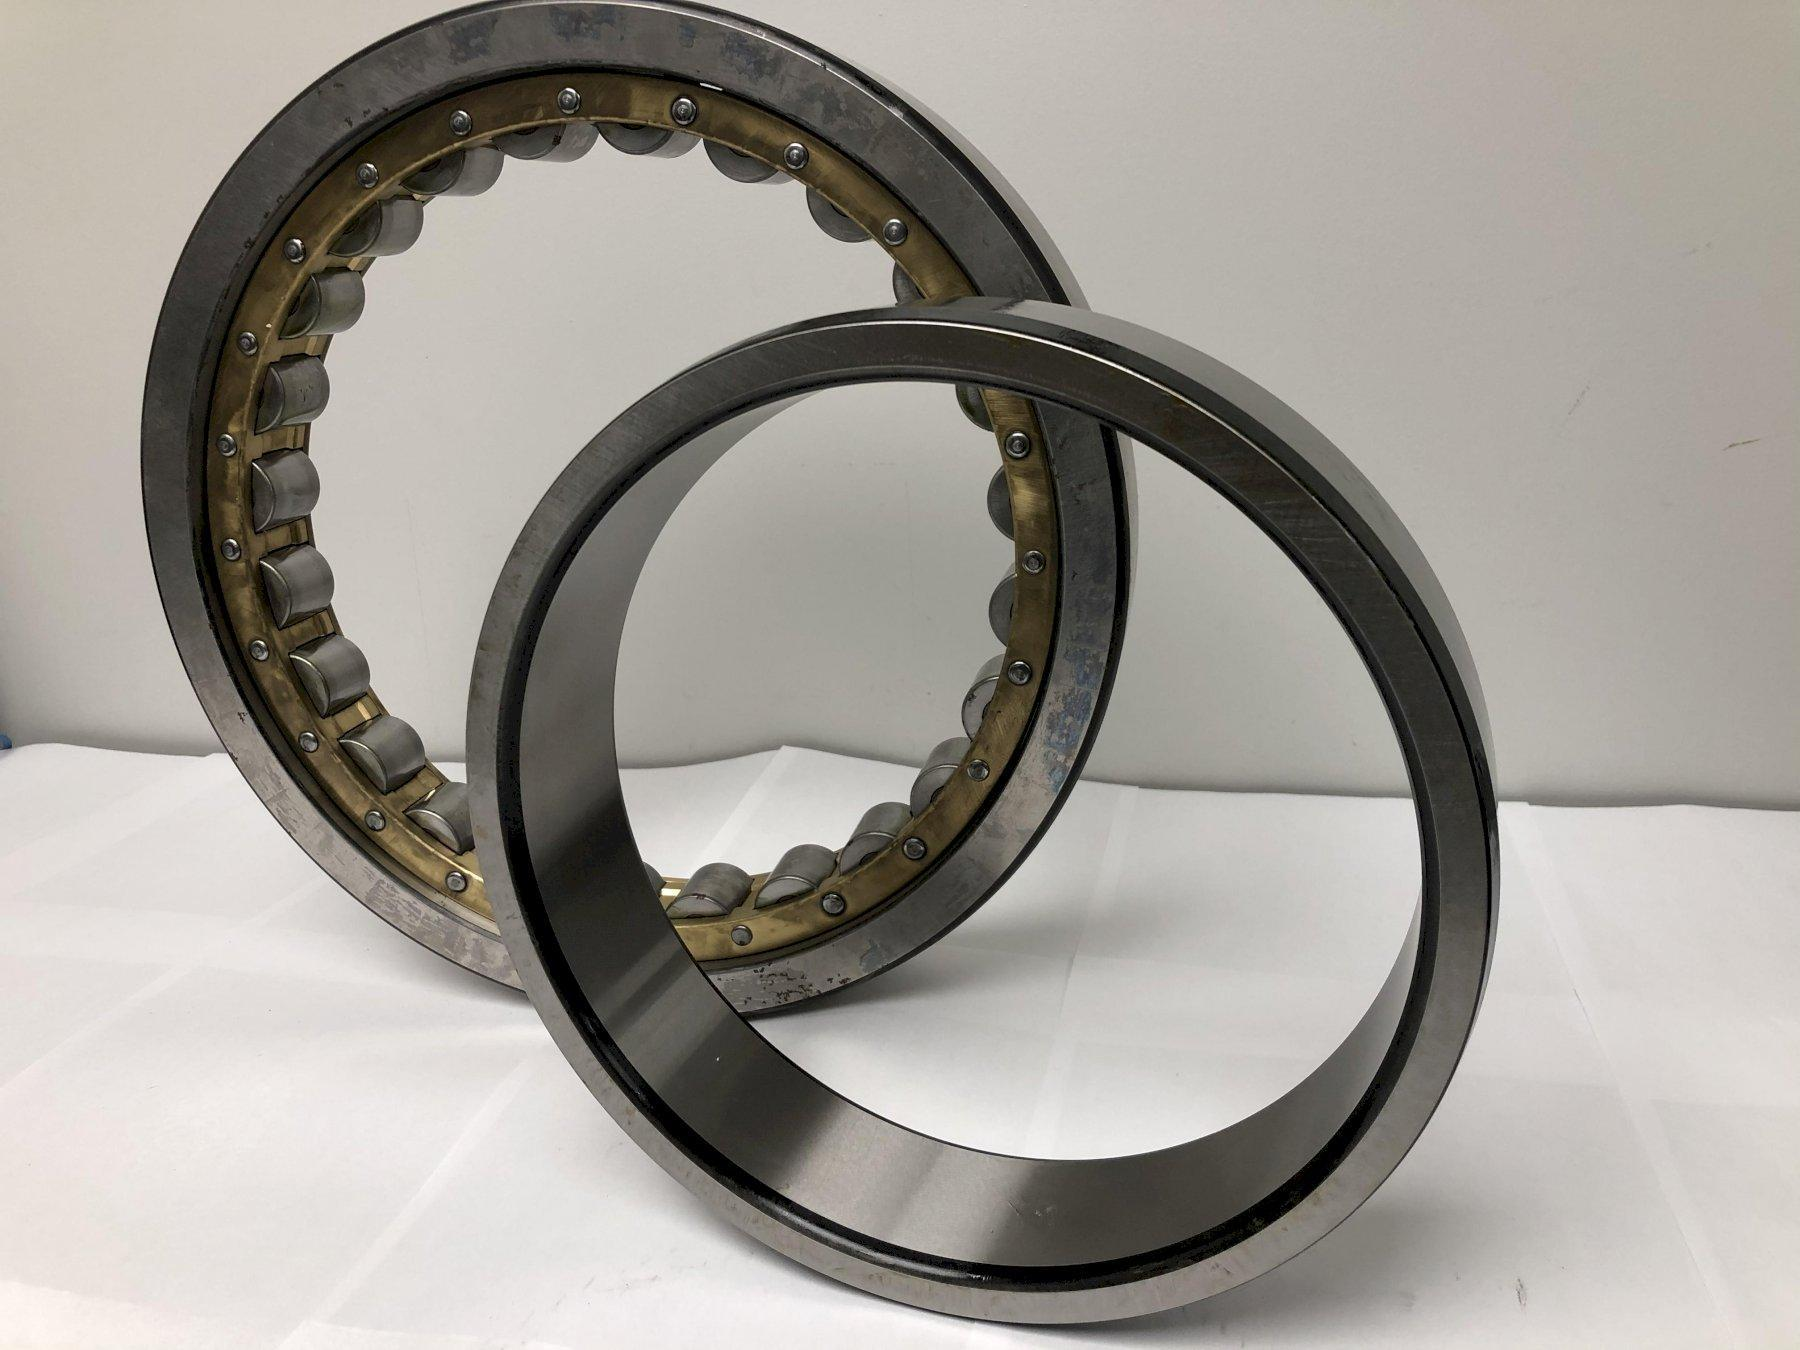 NSK RC-25 MODEL NU1052 COMPLETE CYNDRICAL BEARING: STOCK #14297